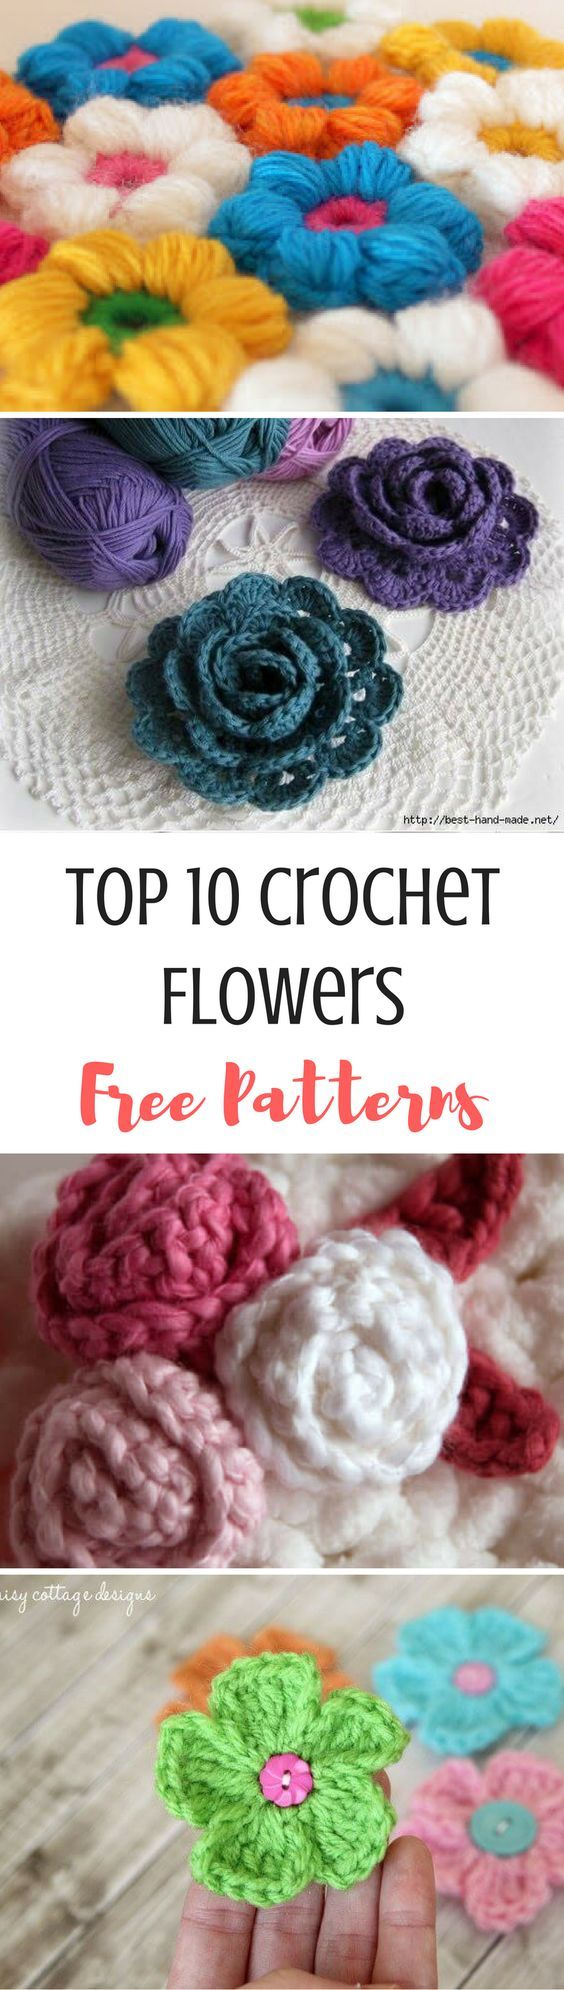 Top 10 free crochet flower patterns free crochet flower patterns crochet flowers are so quick and easy to make theyre perfect for beginners here are the top 10 free crochet flower patterns to try out bankloansurffo Gallery